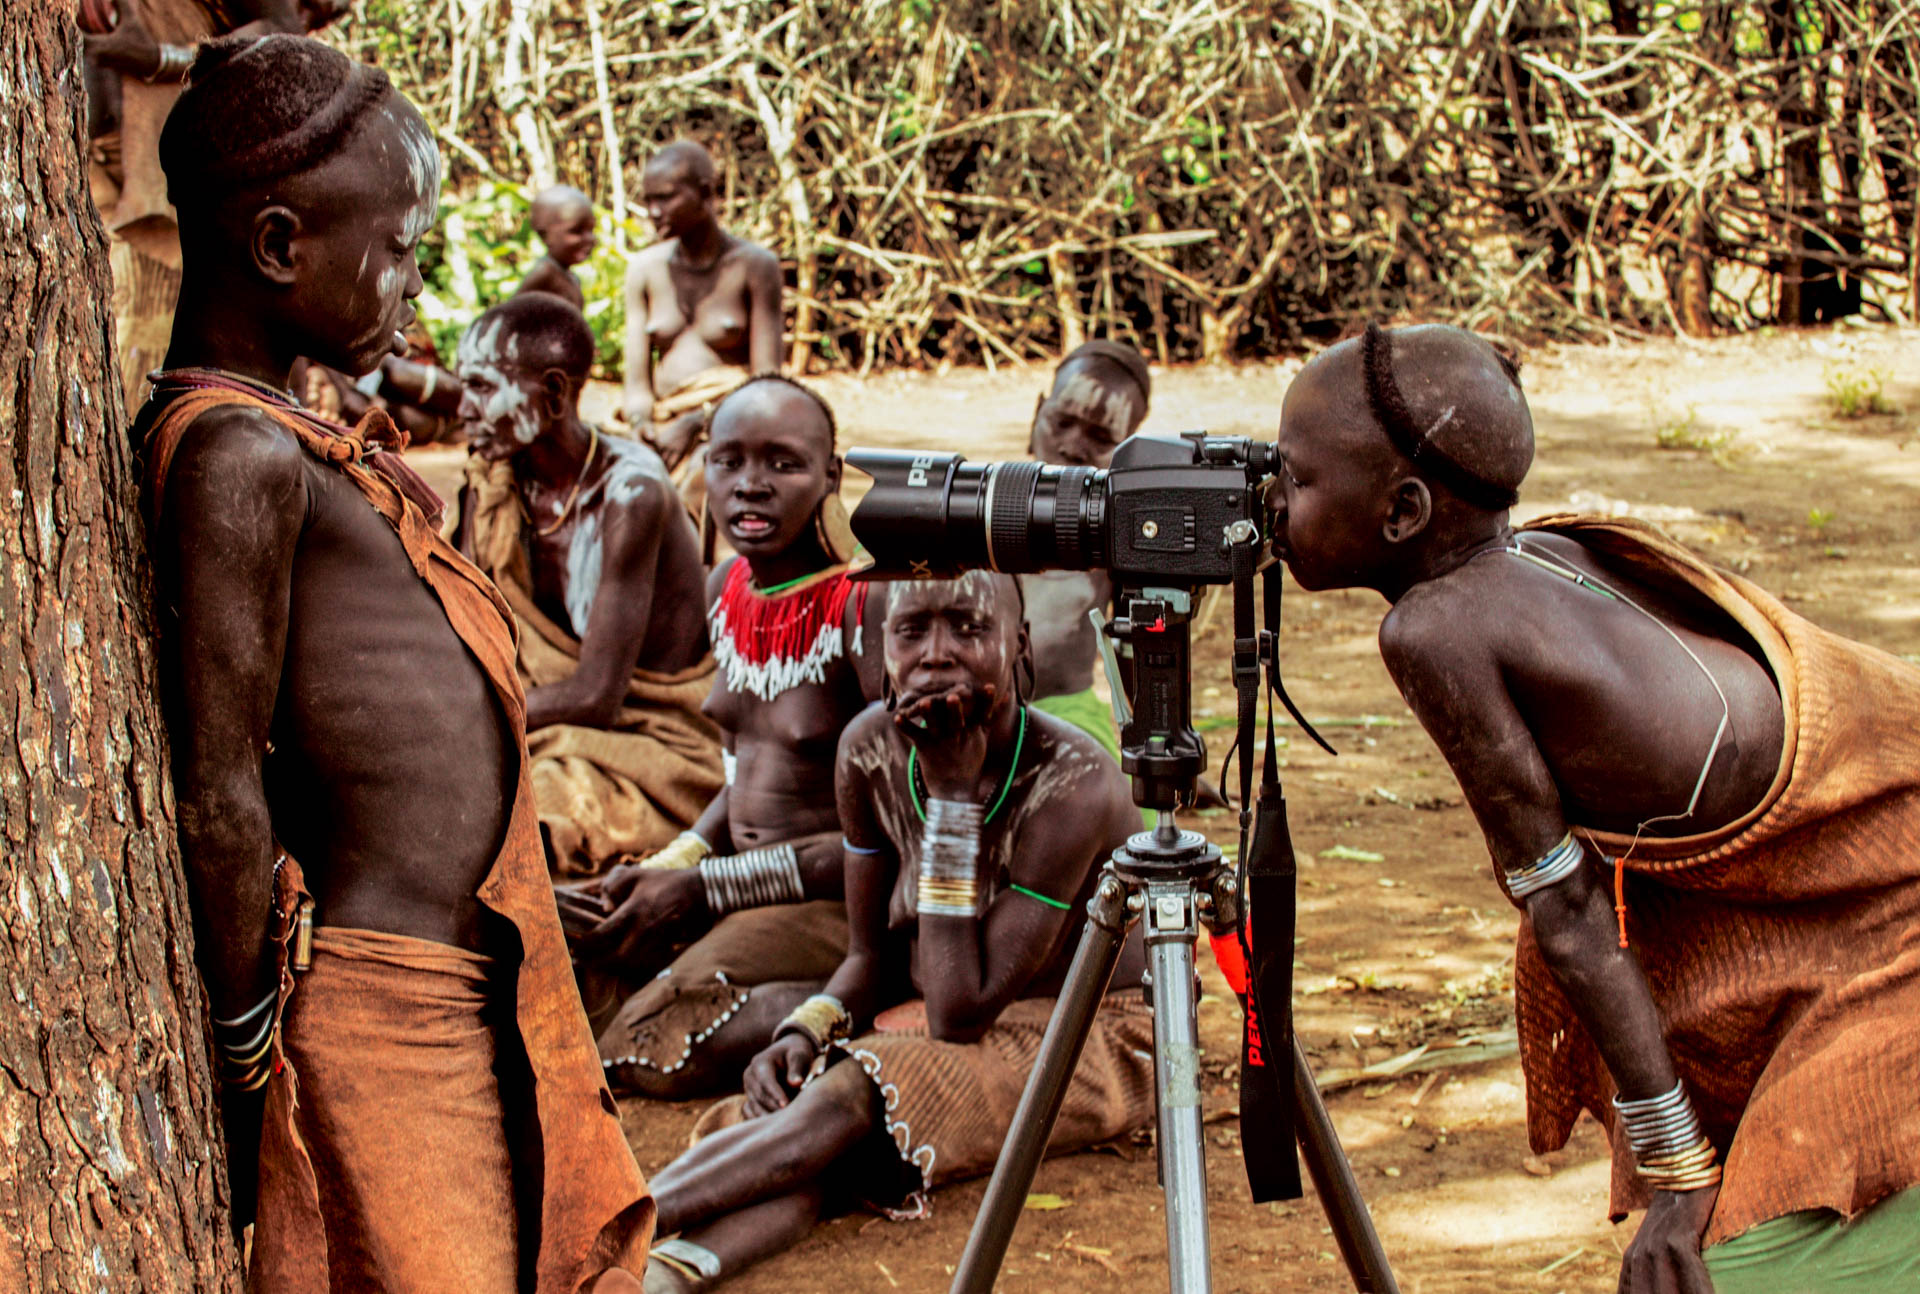 The Mursi are very curious: this child can't resist the temptation of looking through the camera.